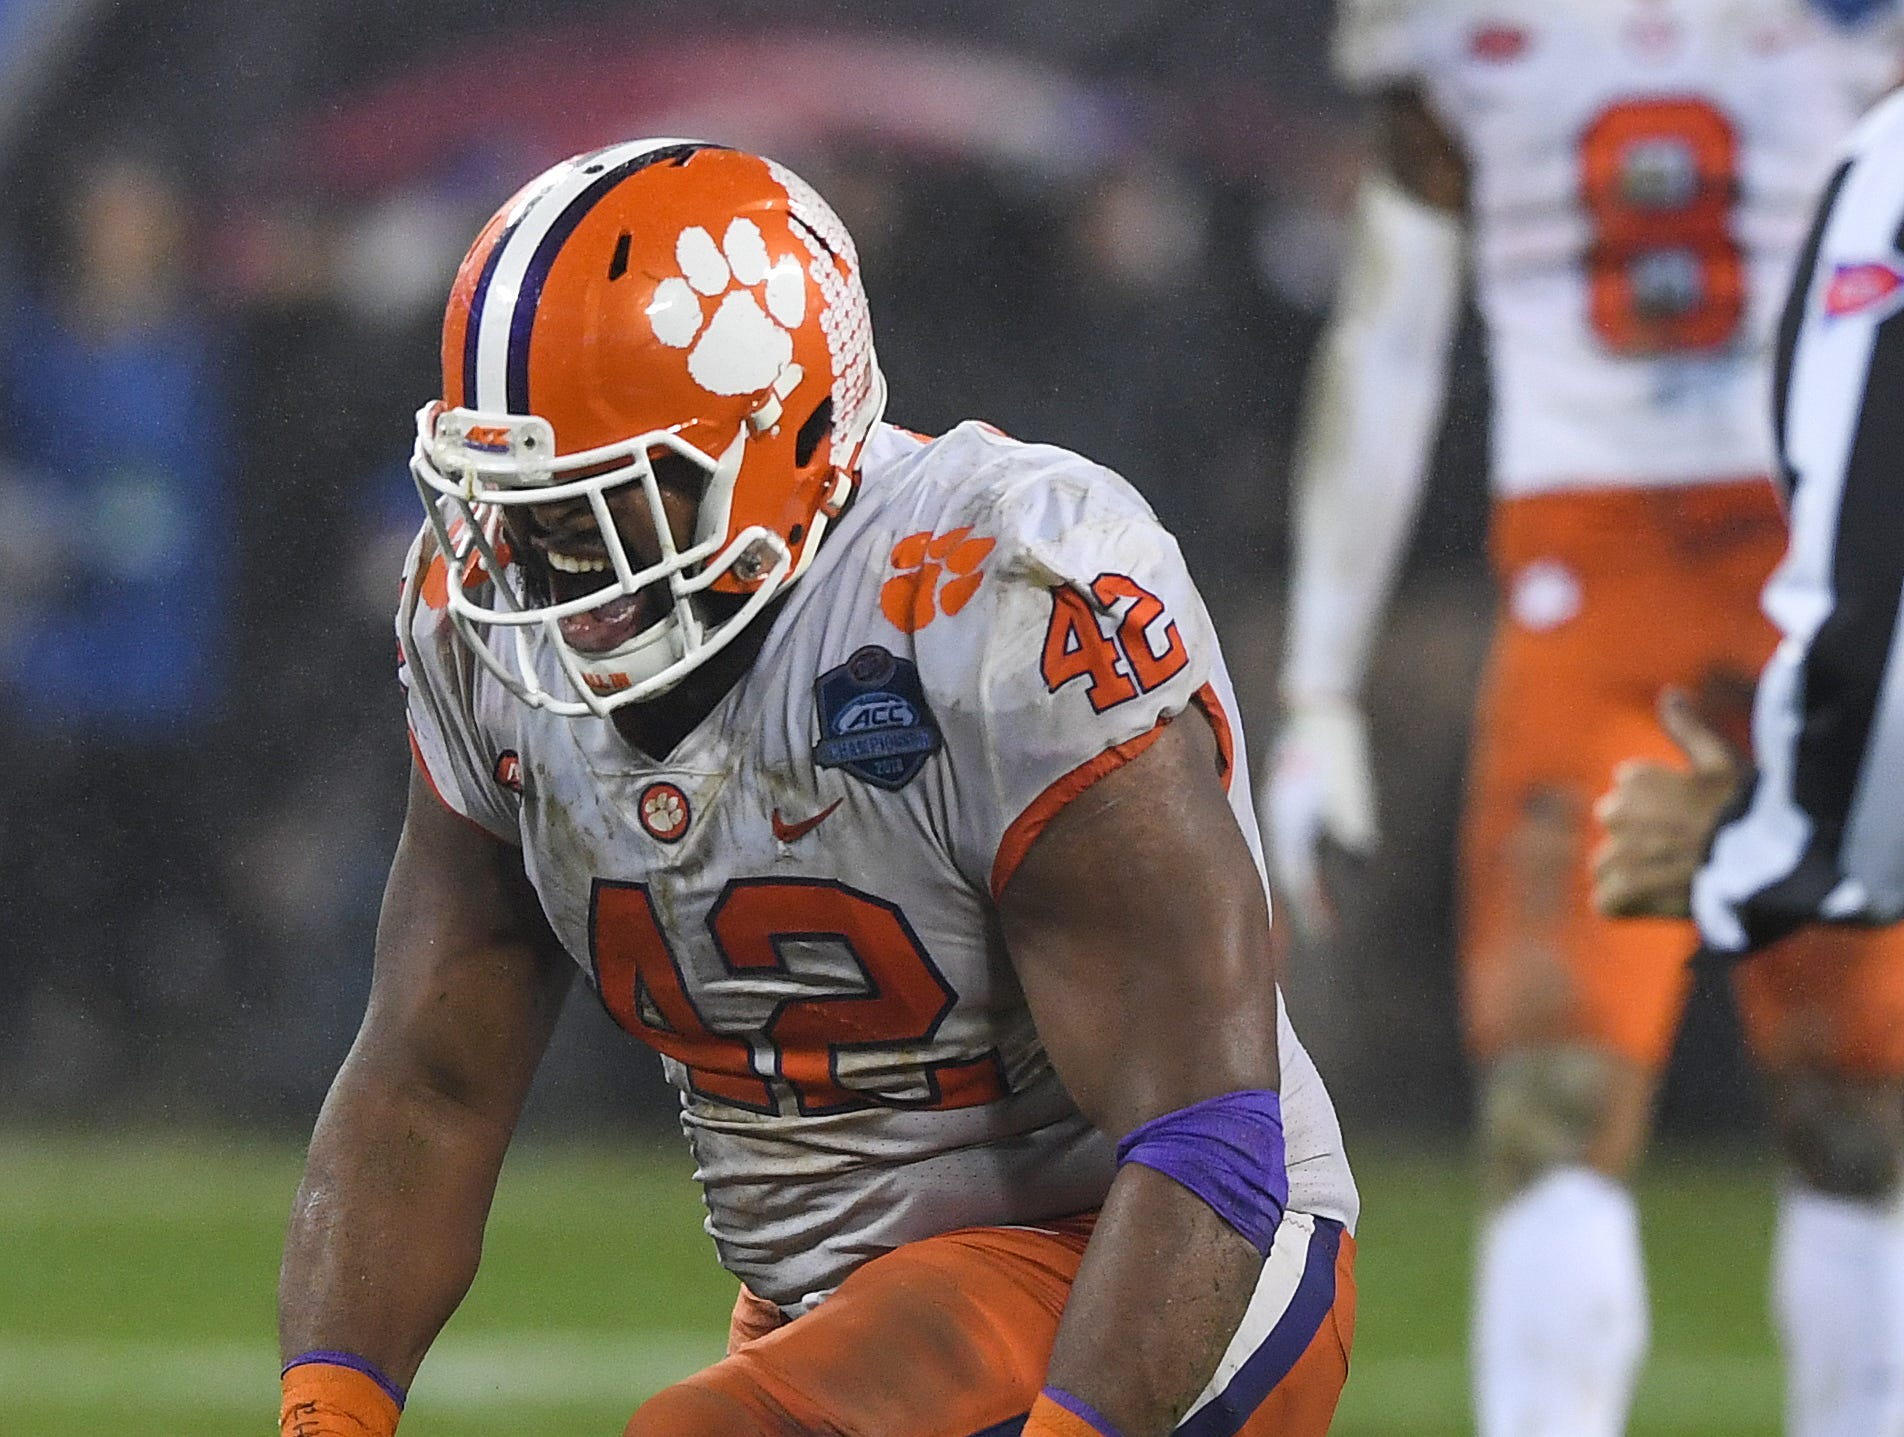 Clemson defensive lineman Christian Wilkins (42) reacts after tackling Pittsburgh running back Darrin Hall (22) during the 3rd quarter of the Dr. Pepper ACC Championship at Bank of America Stadium in Charlotte, N.C. Saturday, December 1, 2018.